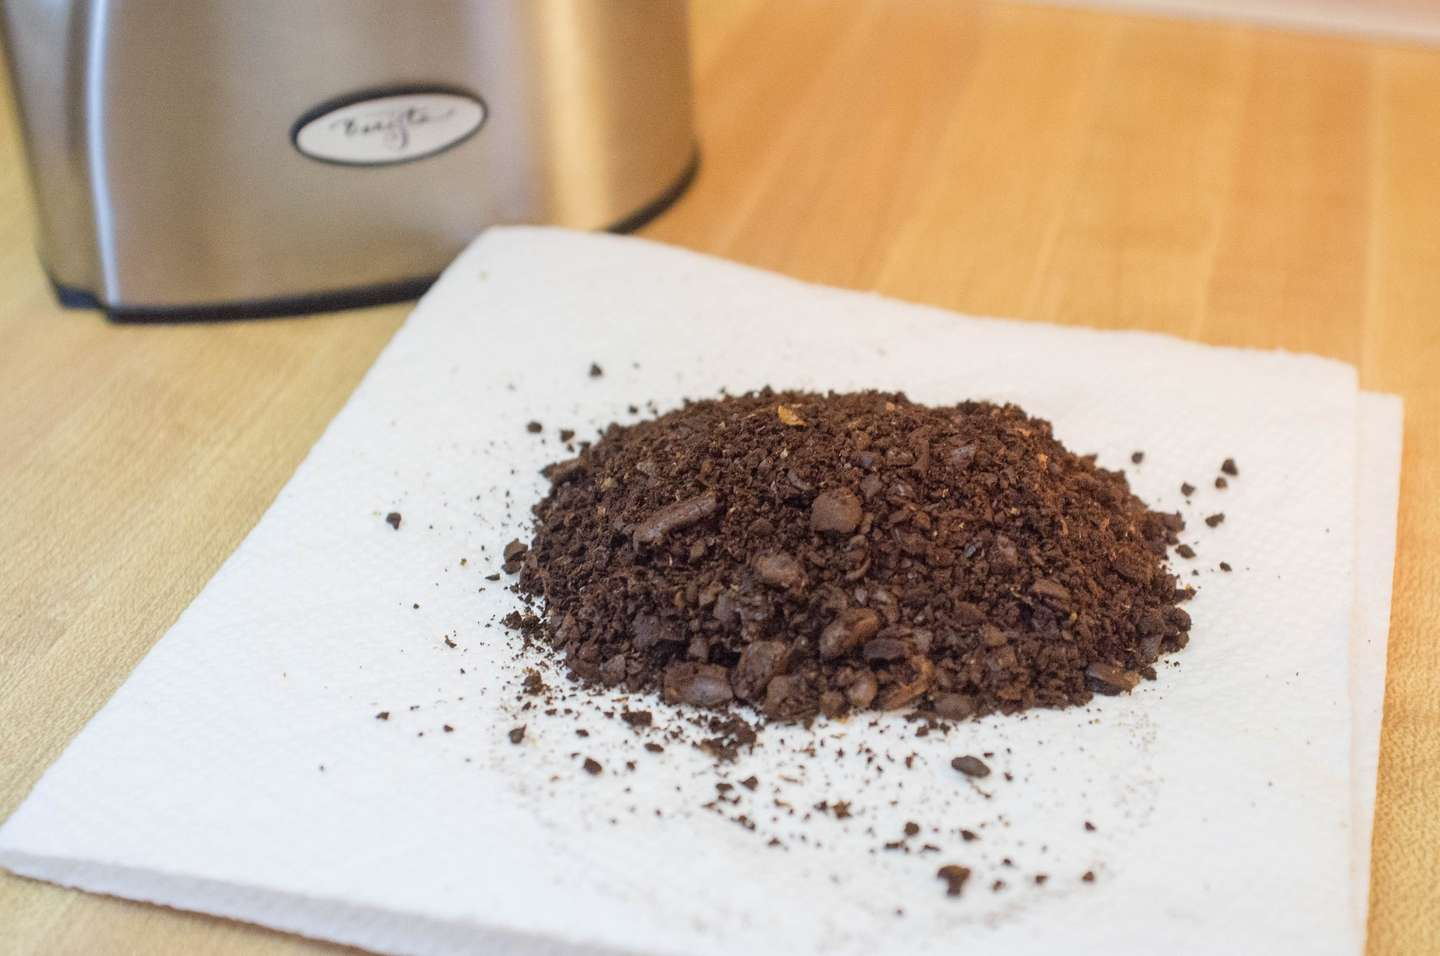 An uneven coffee grind with chunks and fine particles